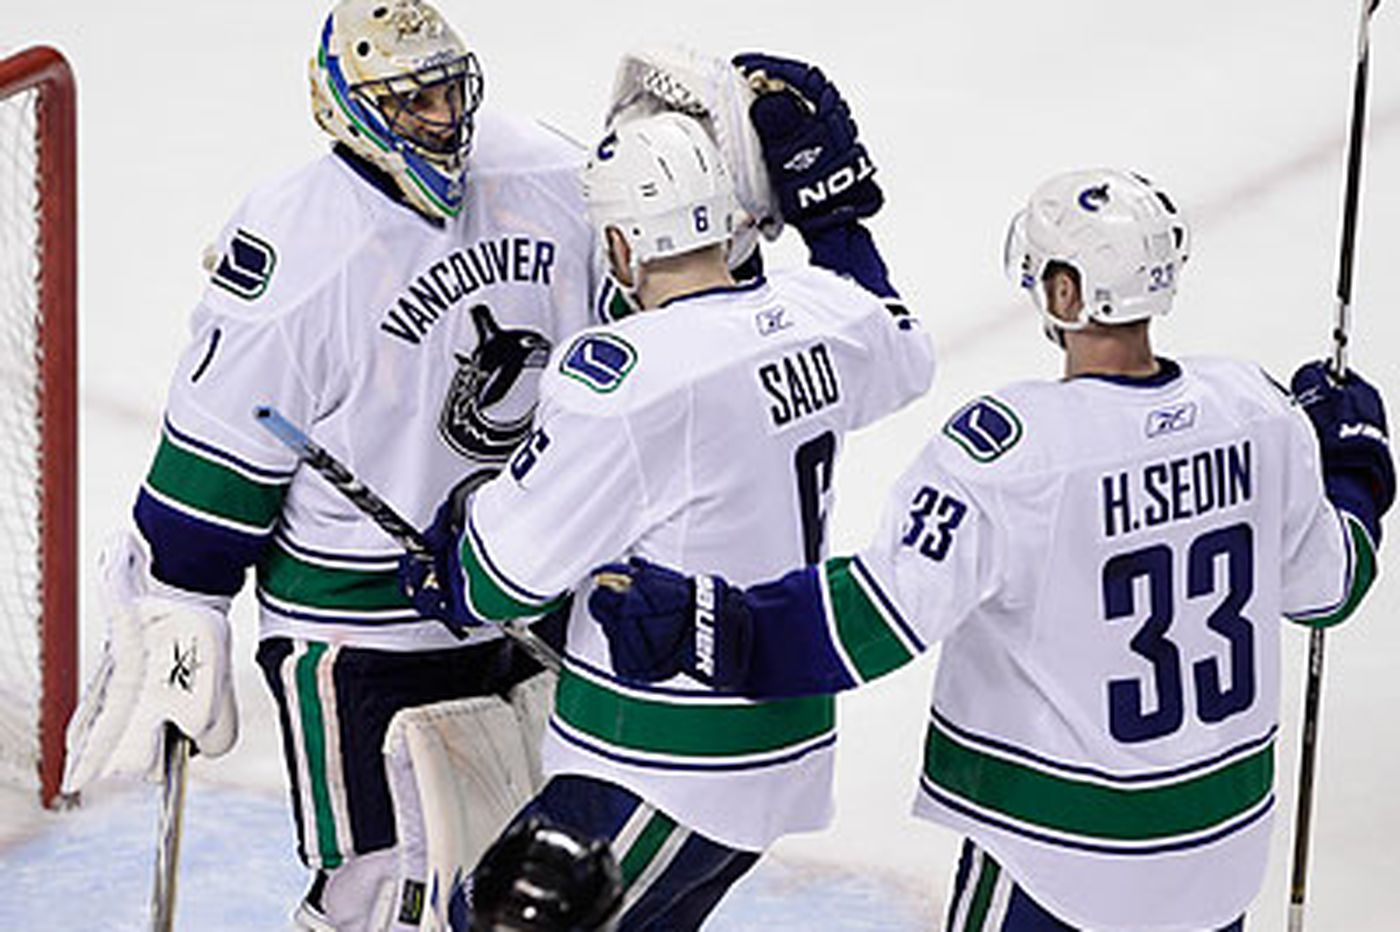 Canucks win, push Sharks to brink